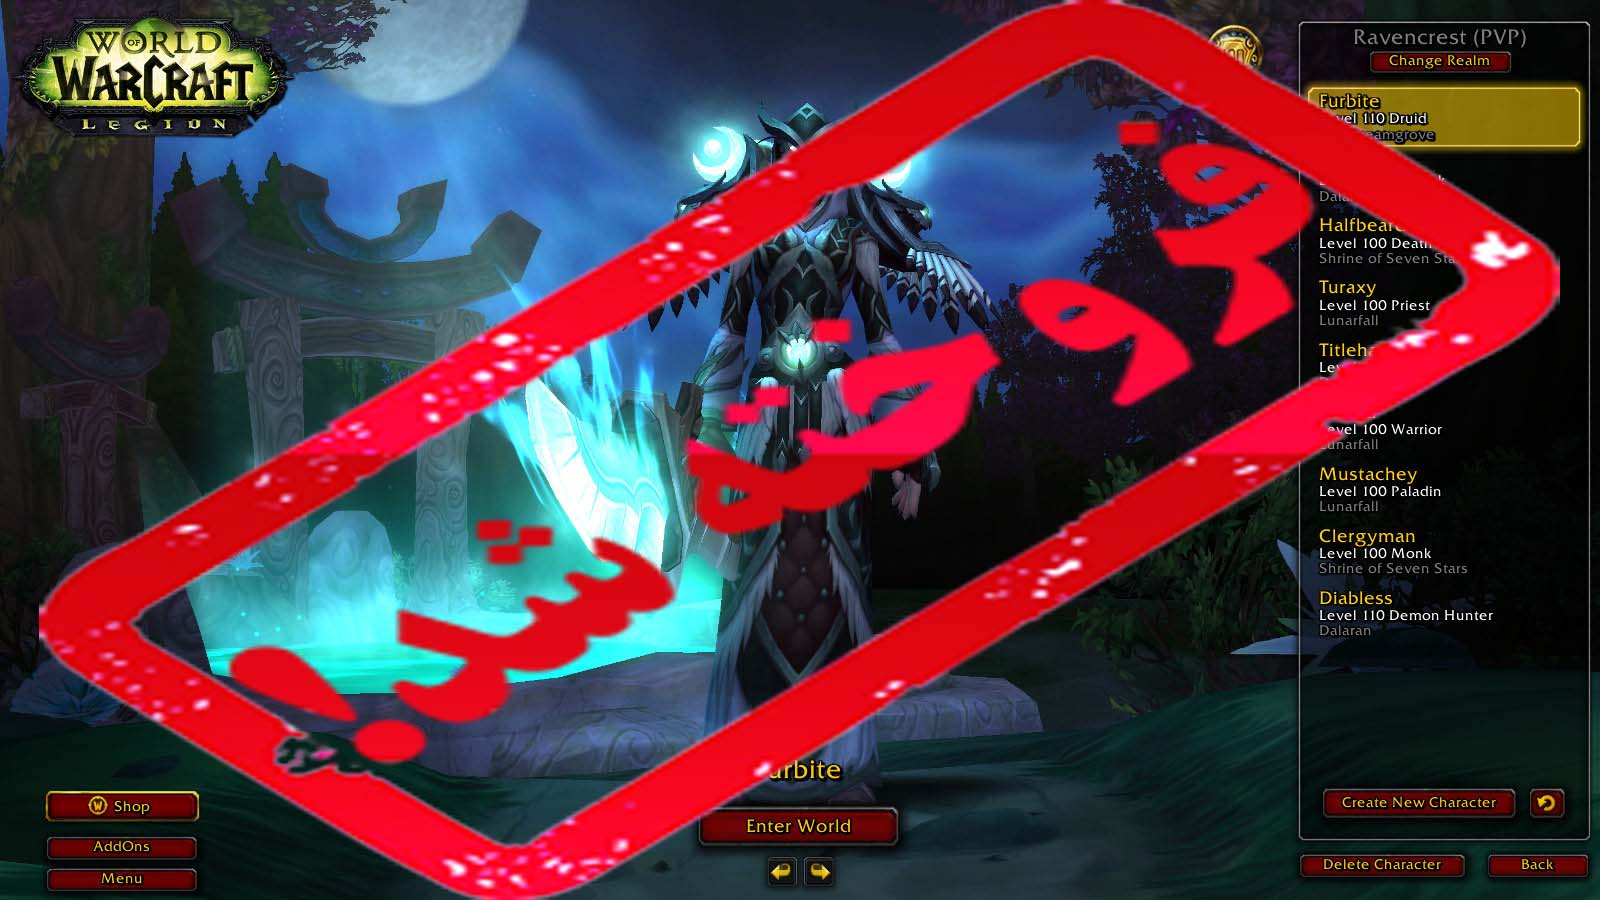 فروش اکانت -کلاس Druid + Demon Hunter - سرور Battle.net